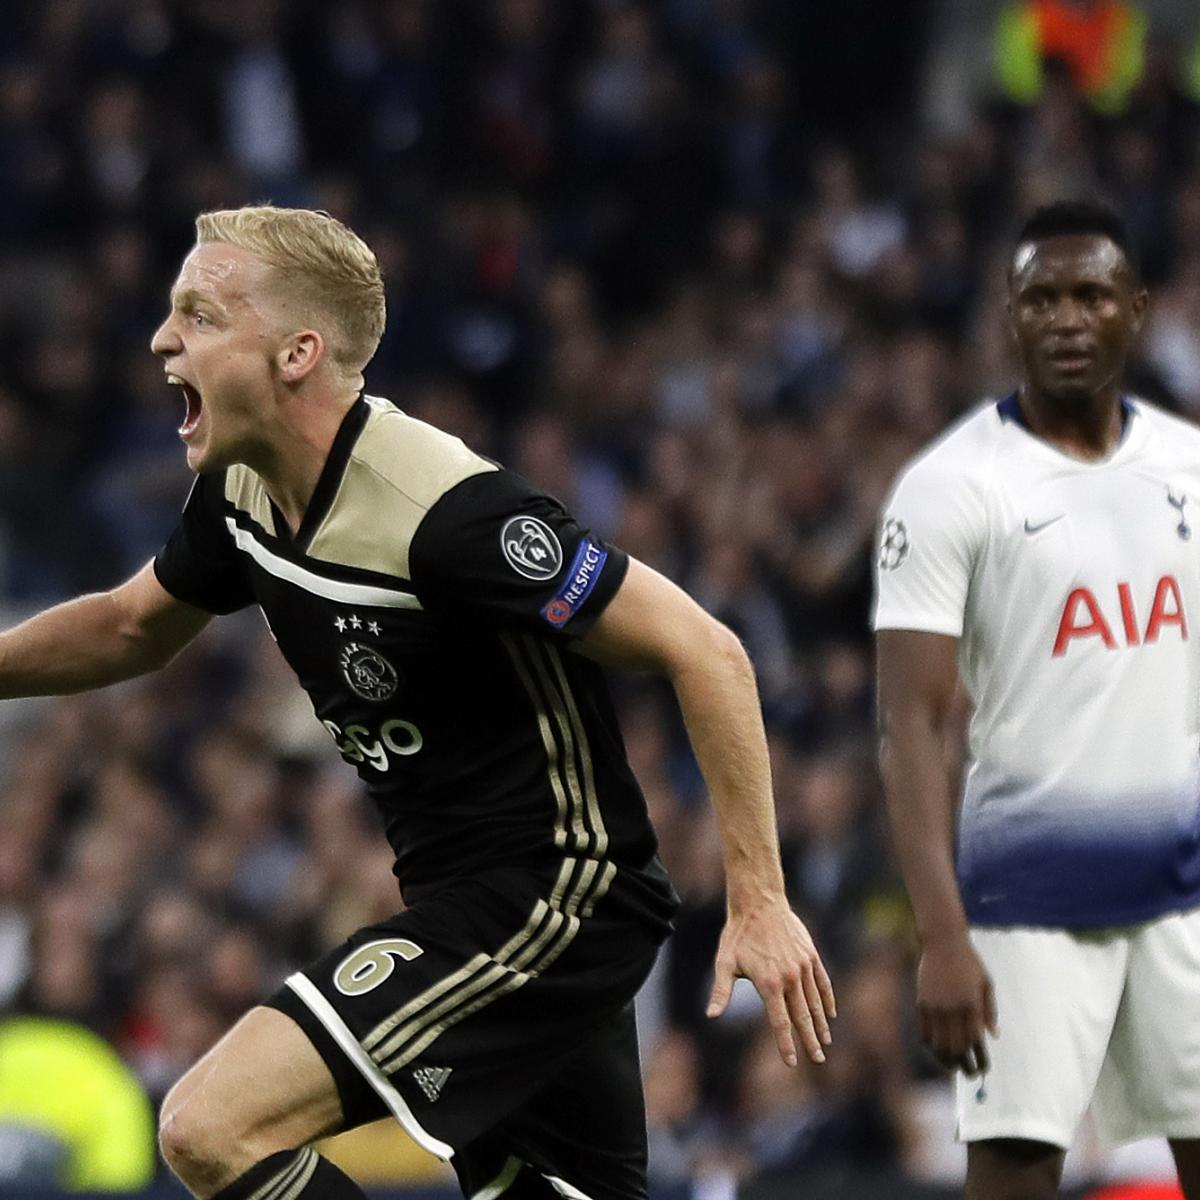 Donny Van De Beek's Goal Leads Ajax To Win Vs. Tottenham